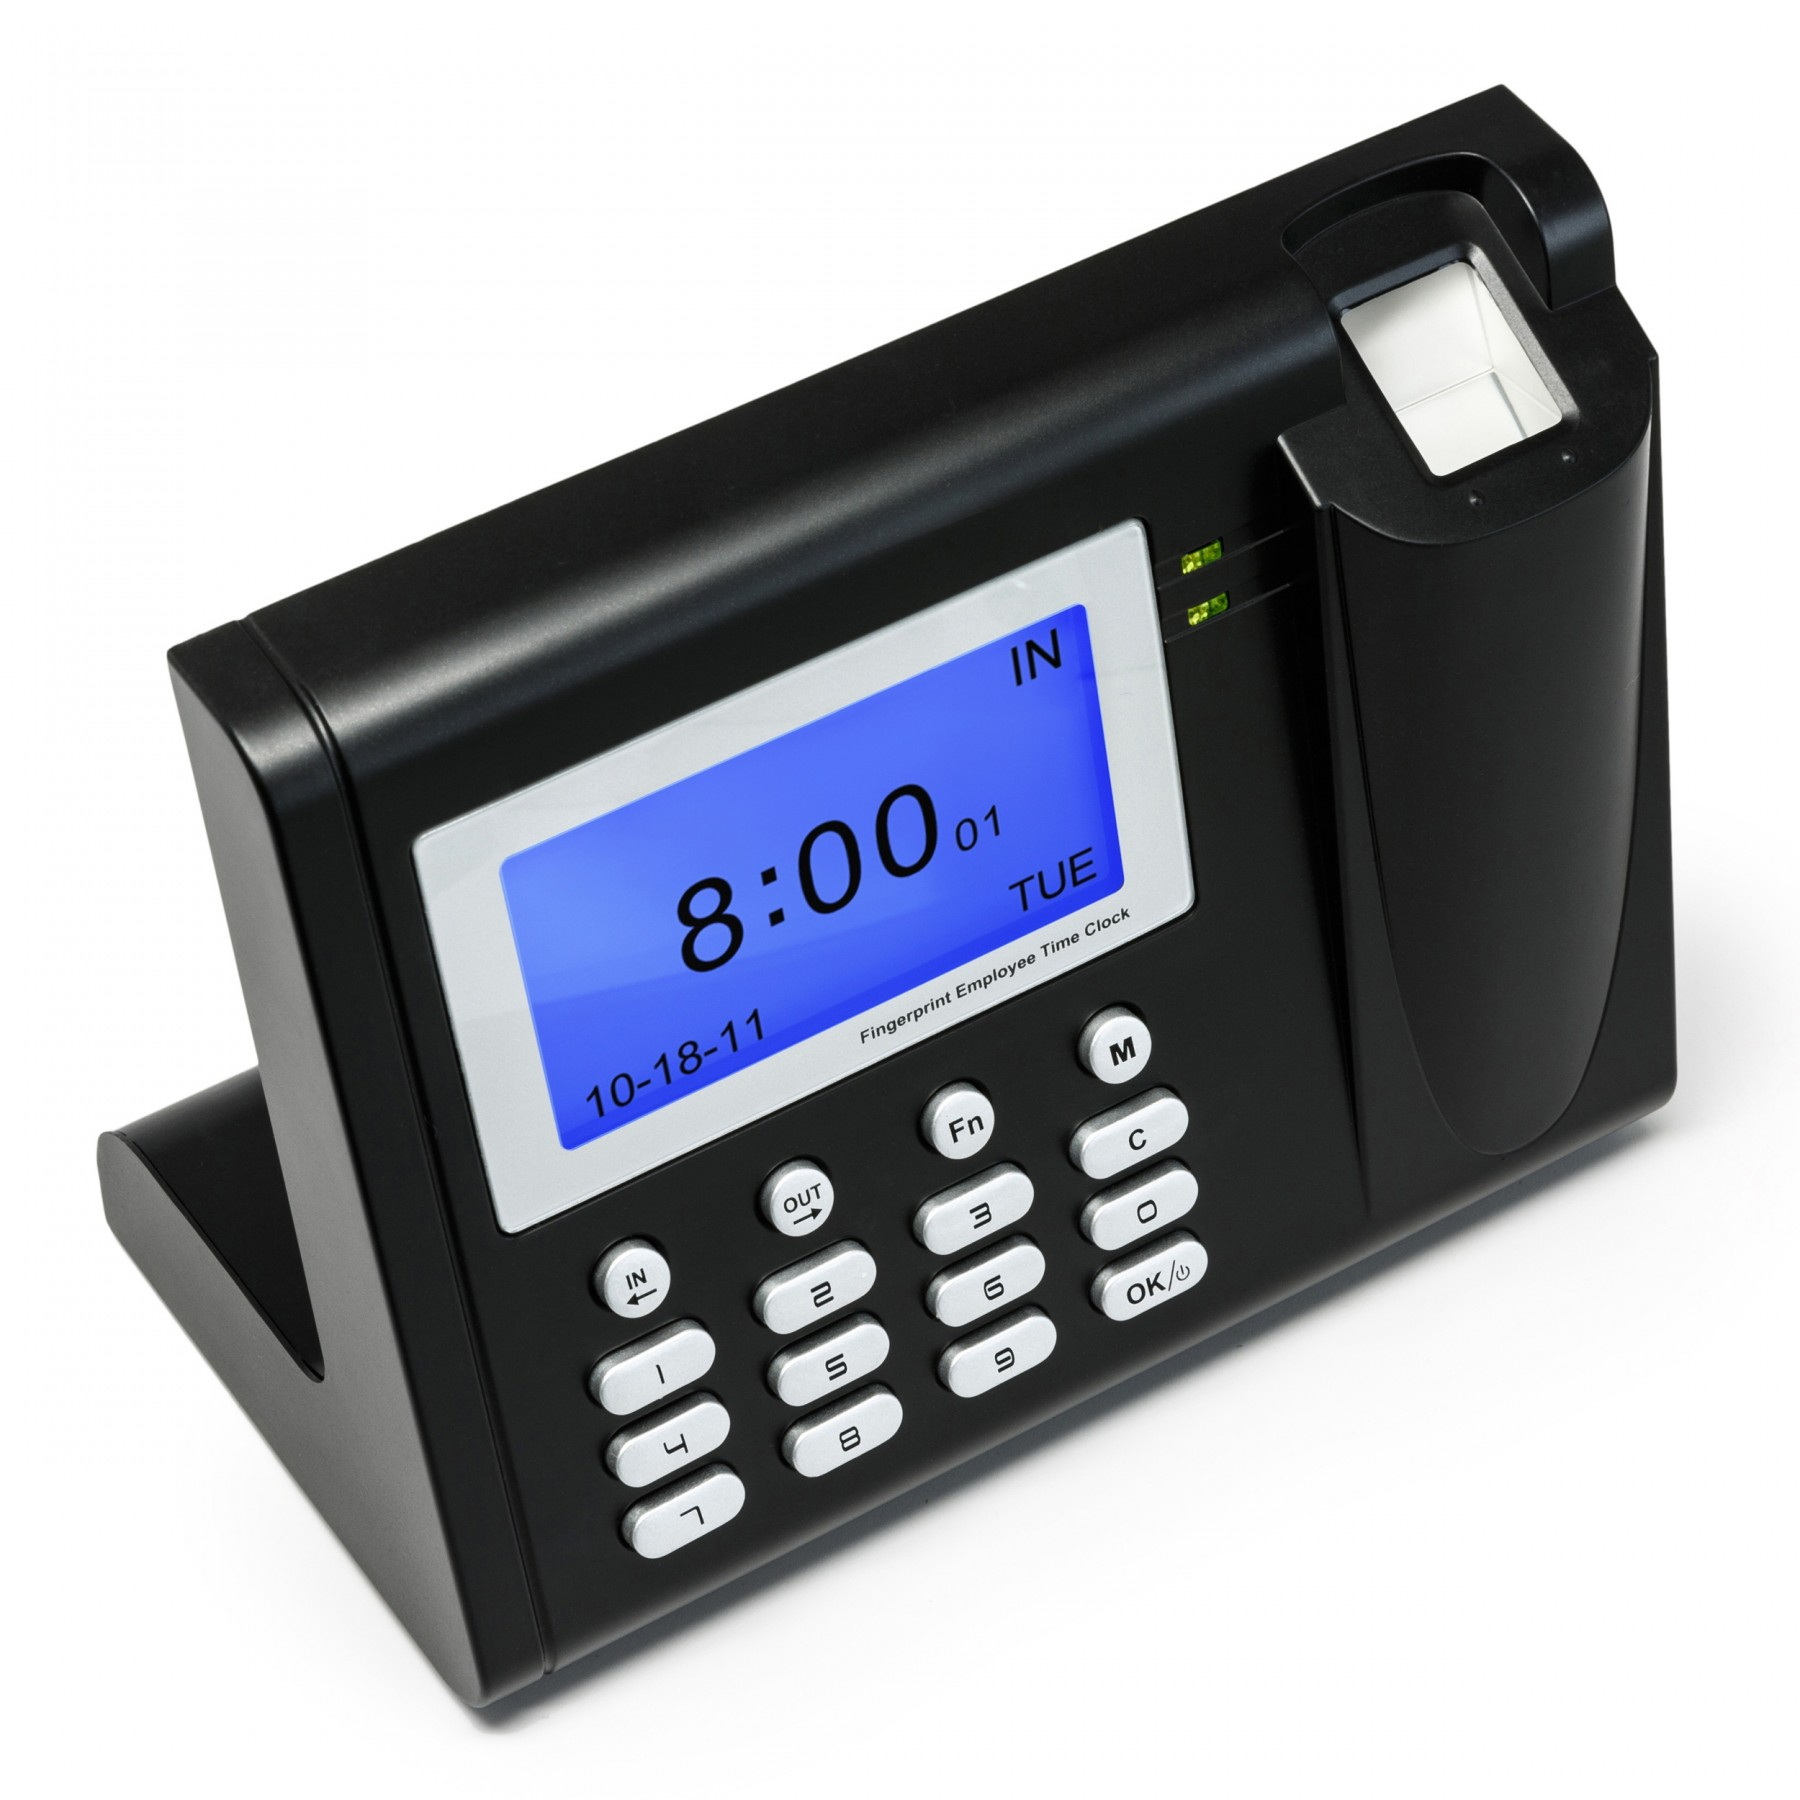 fingerprint clocking in machine reviews